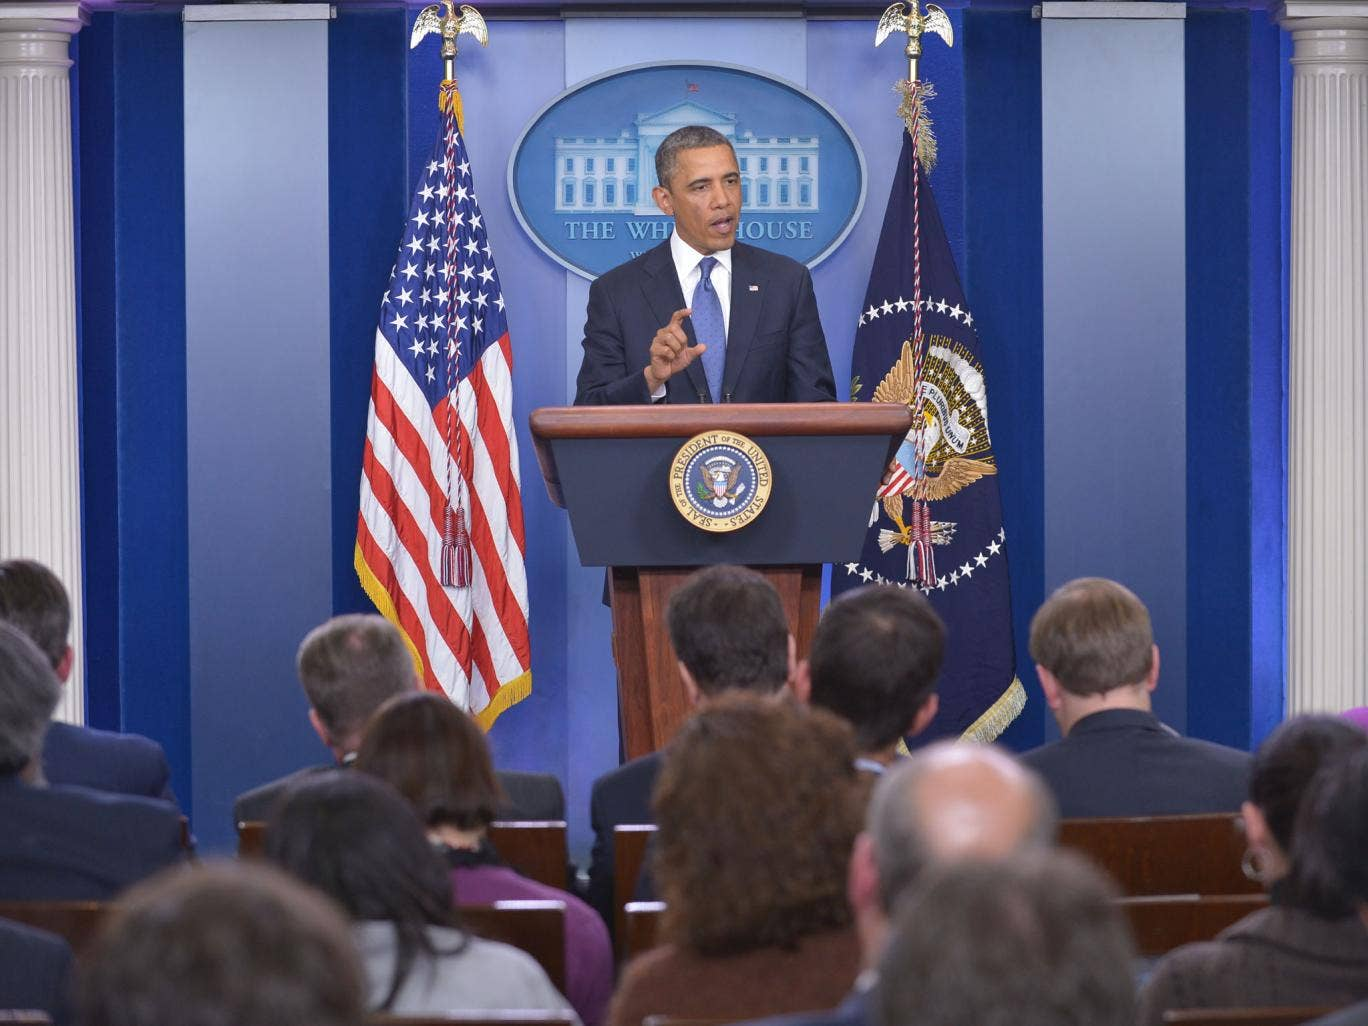 US President Barack Obama speaks following a meeting with congressional leaders in the Brady Briefing Room of the White House. Obama met with congressional leaders for talks aimed at avoiding the 'fiscal cliff'.